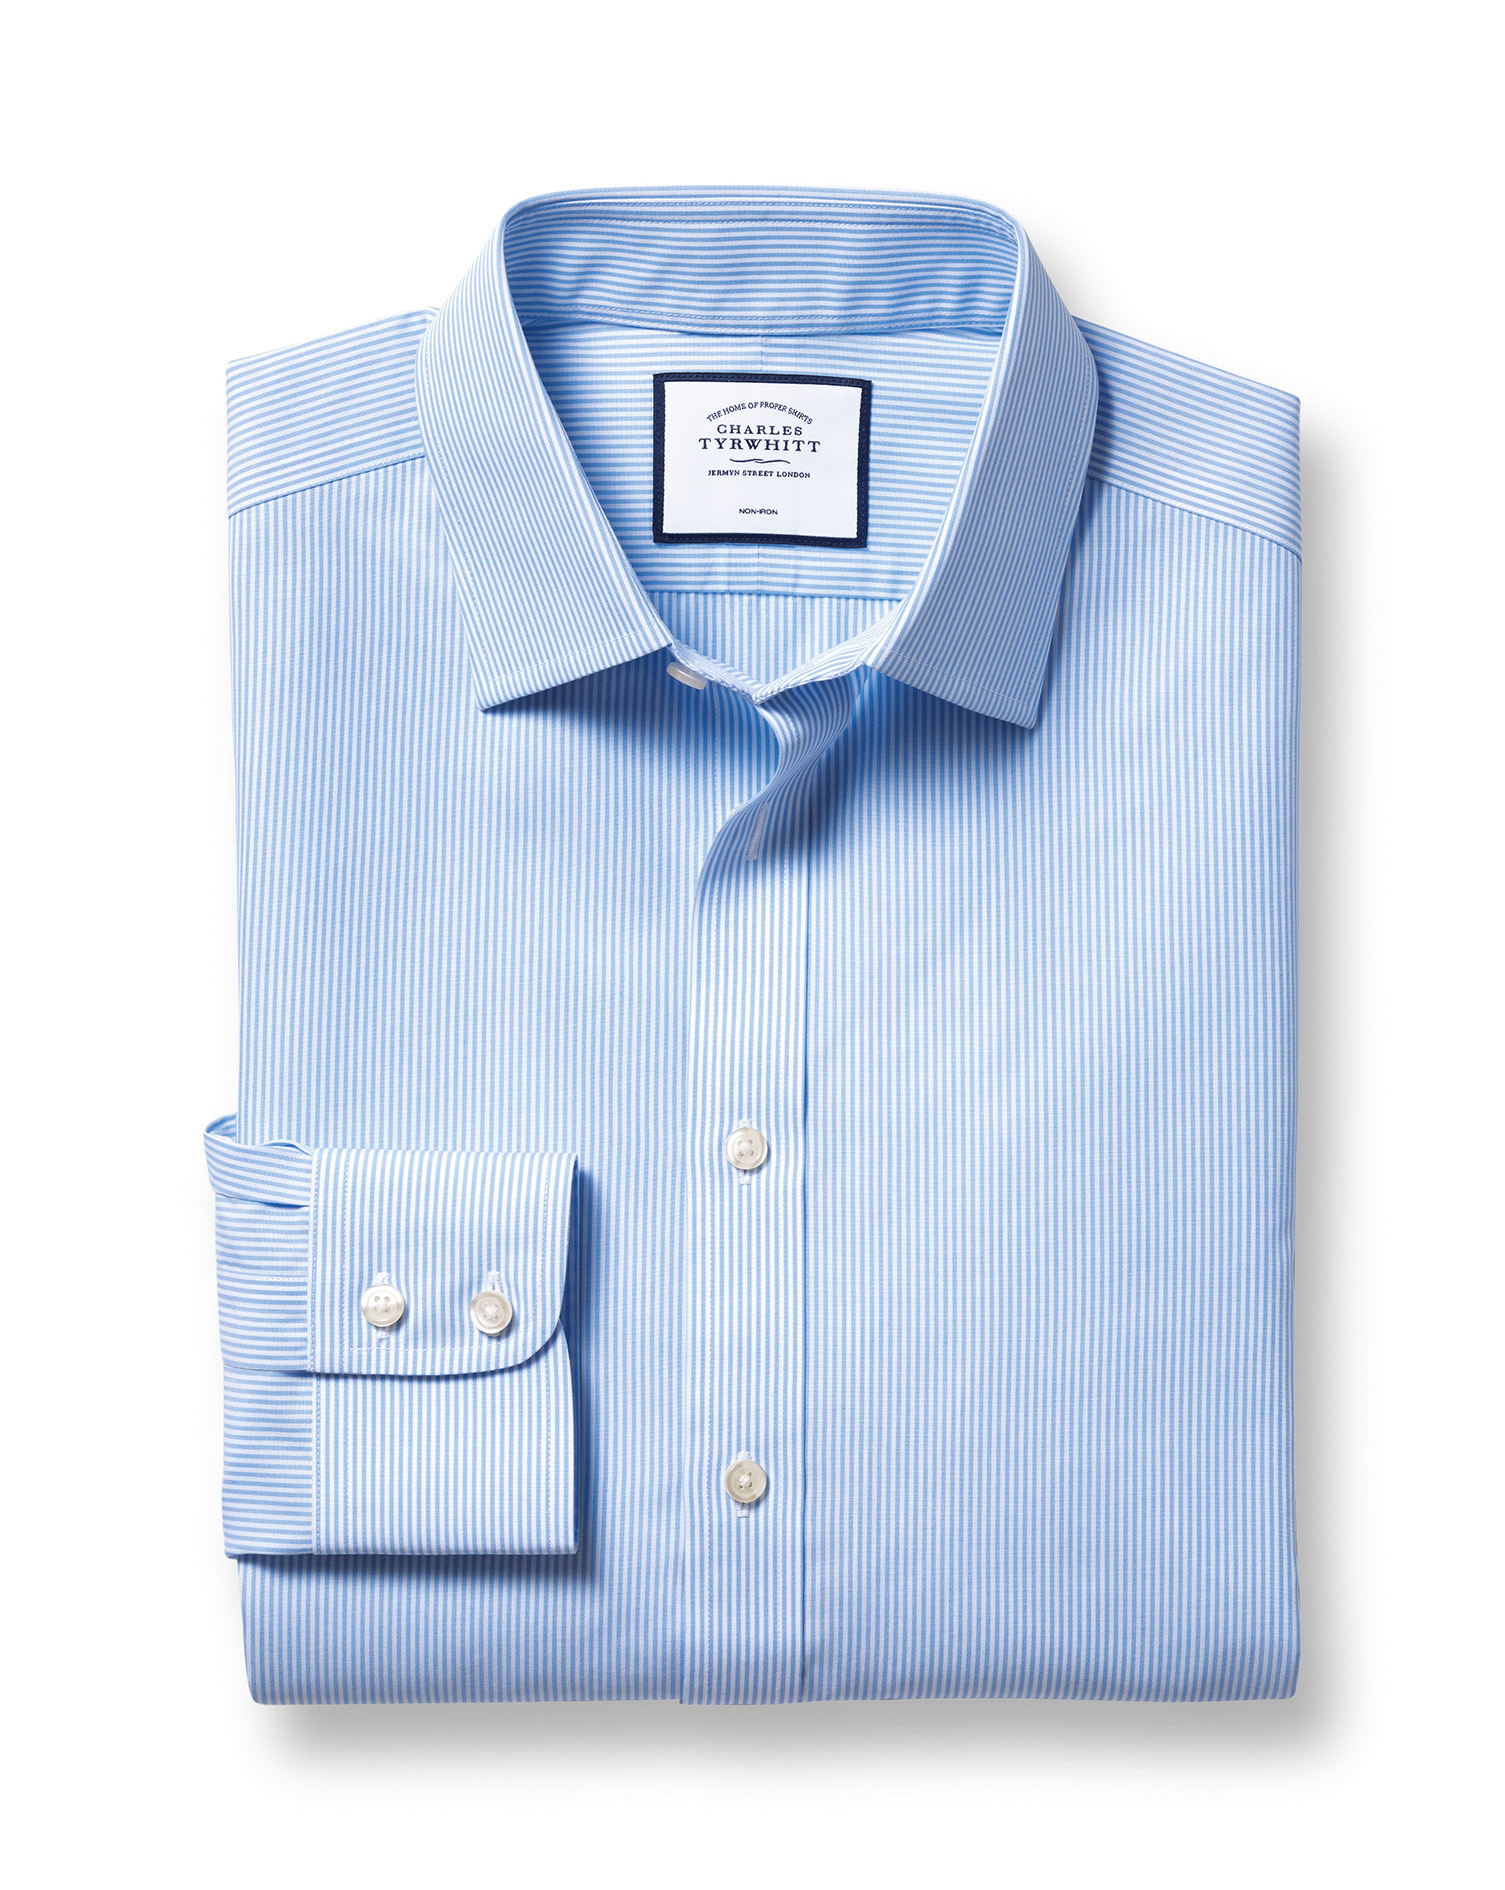 Classic Fit Non-Iron Sky Blue Bengal Stripe Cotton Formal Shirt by Charles Tyrwhitt